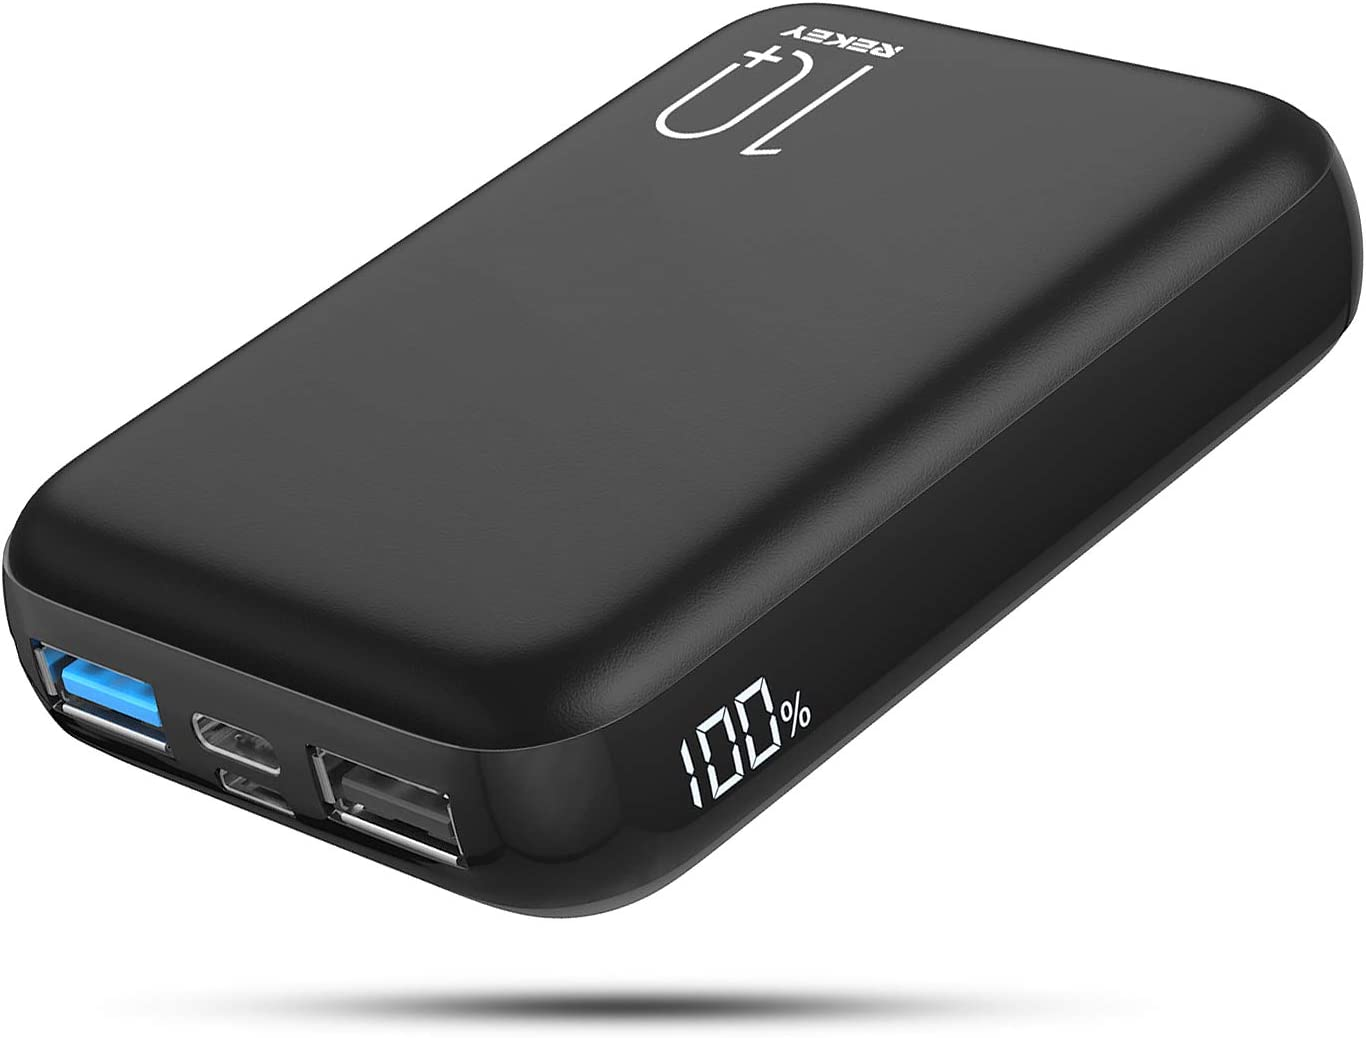 Power Bank 10000mAh Battery Backup Portable Charger with Actual Dual Inputs and Dual Outputs, Battery Pack with Visible LCD Screen, External Battery for iPhone,Samsung Galaxy,ipad and More.